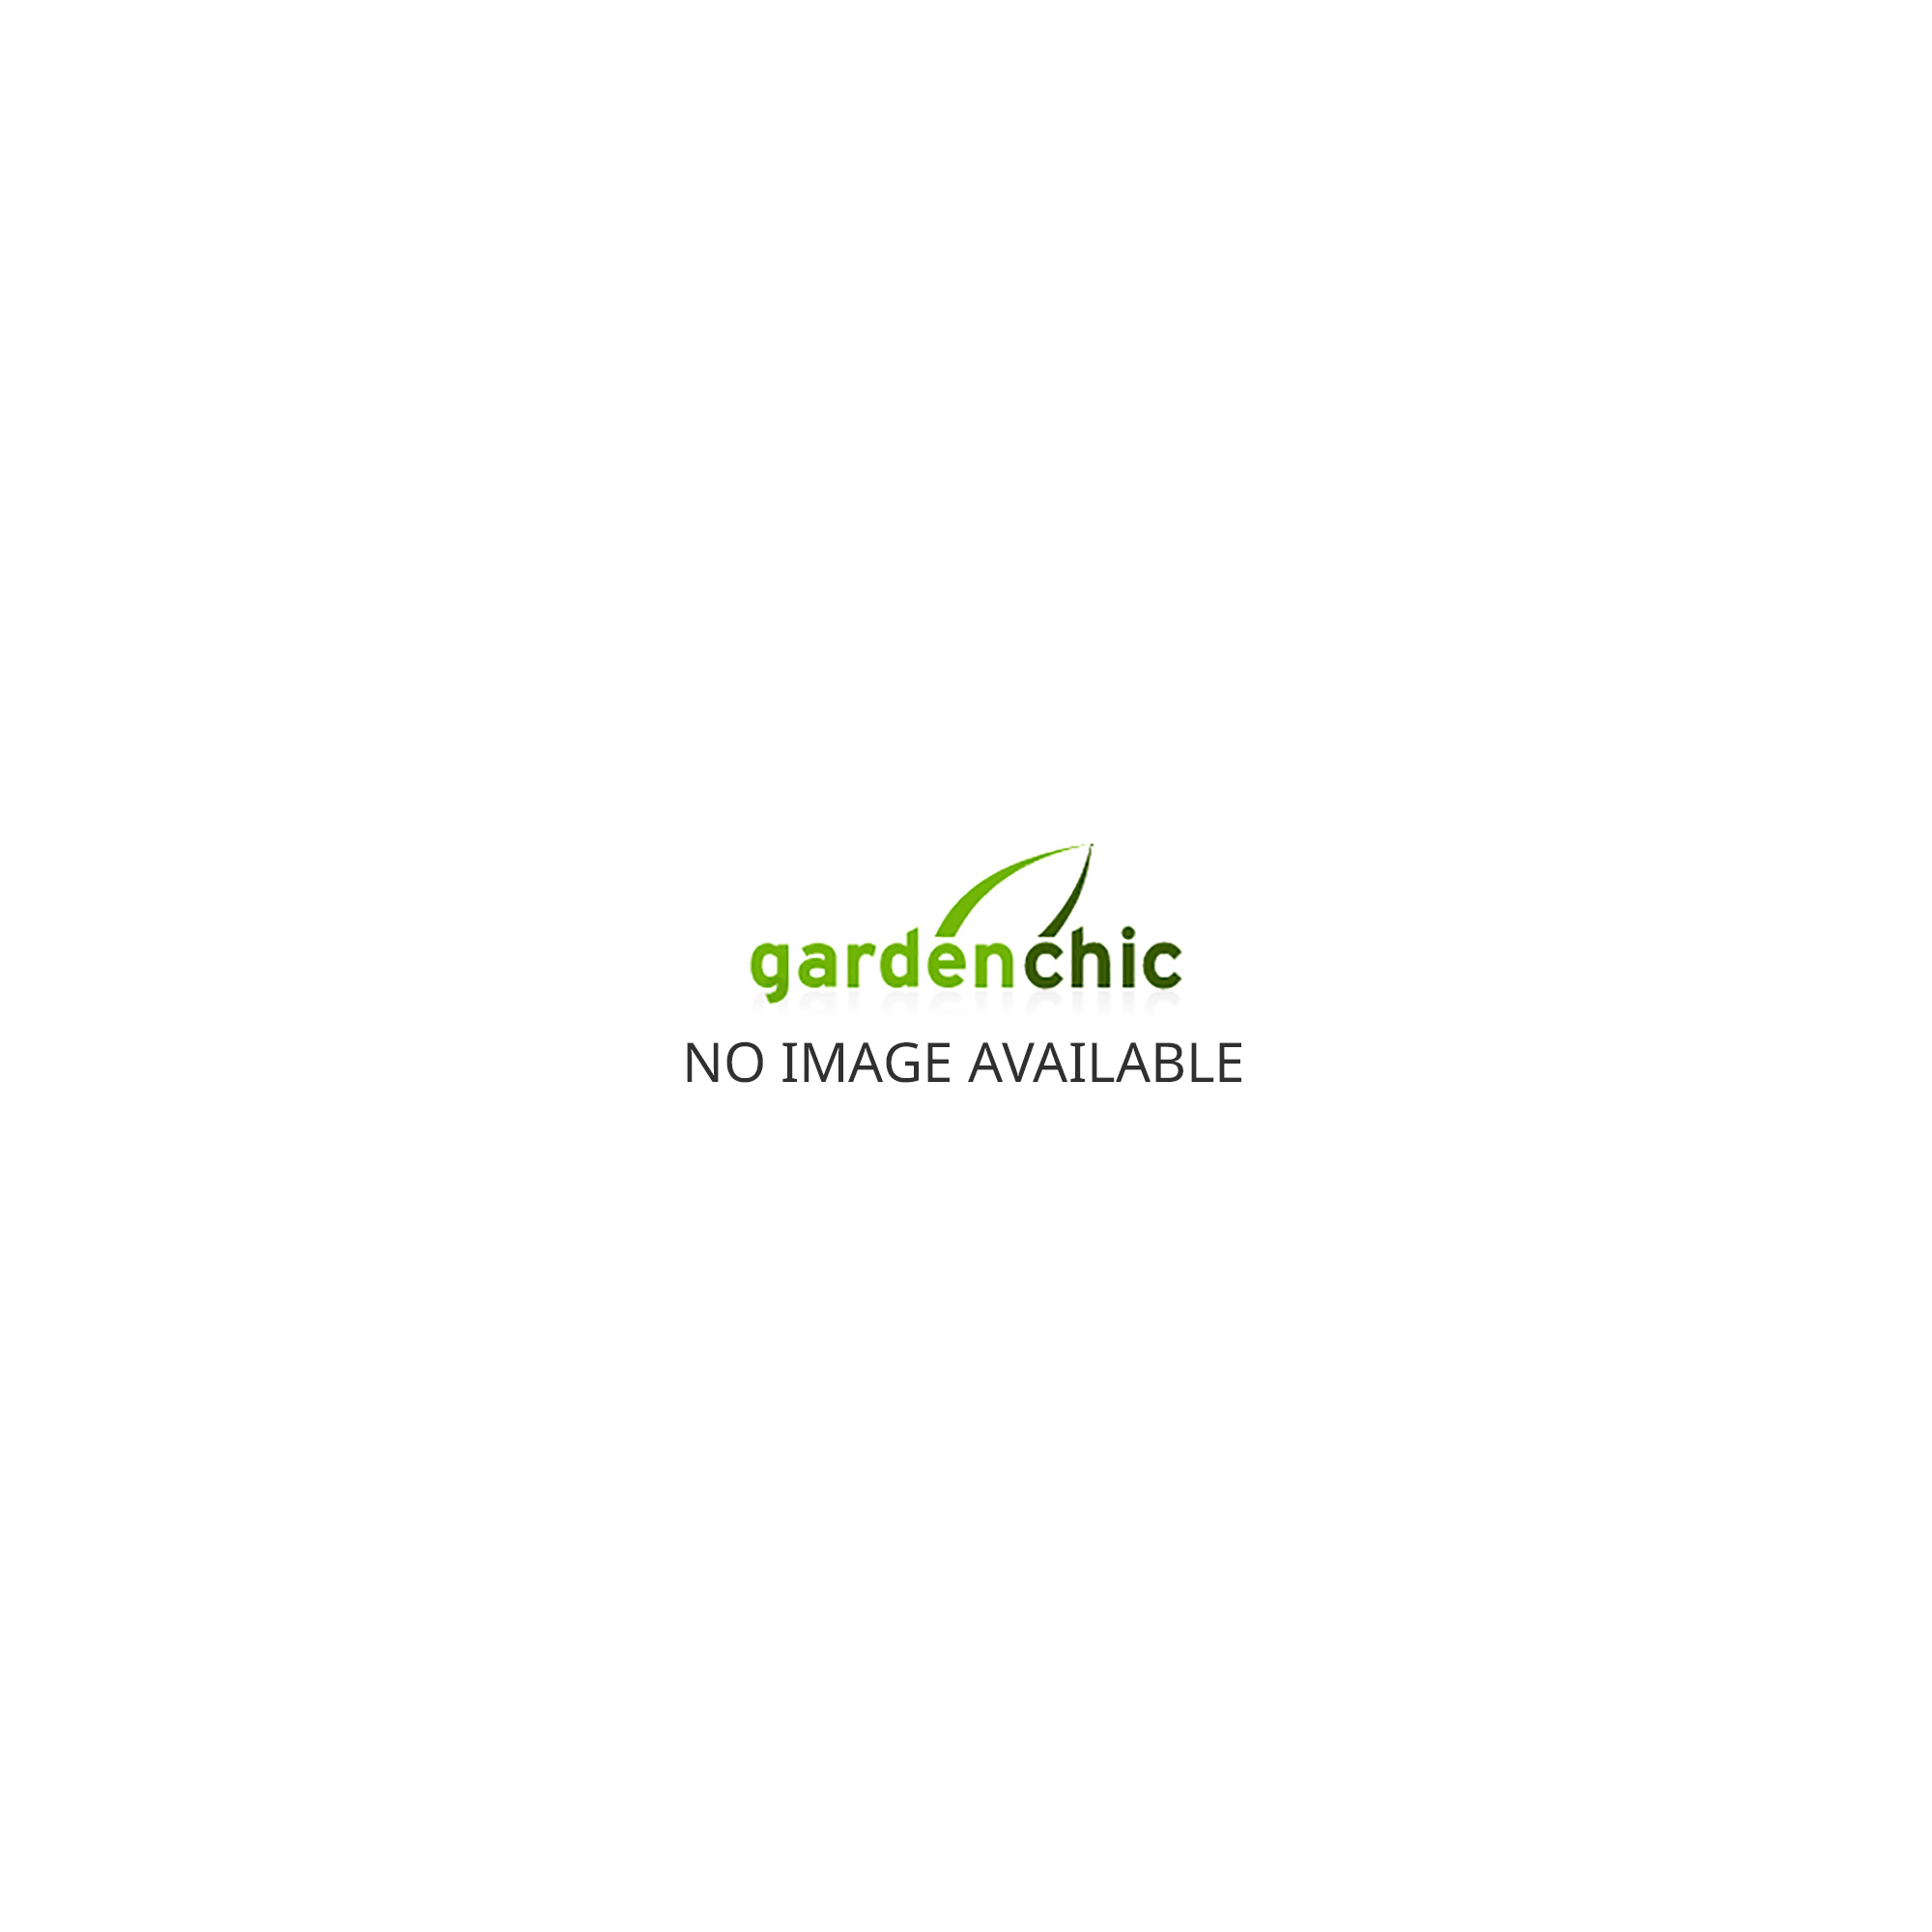 Saturn 6700 8ft x 8ft Greenhouse - Green FREE Matching Base until APRIL 2018